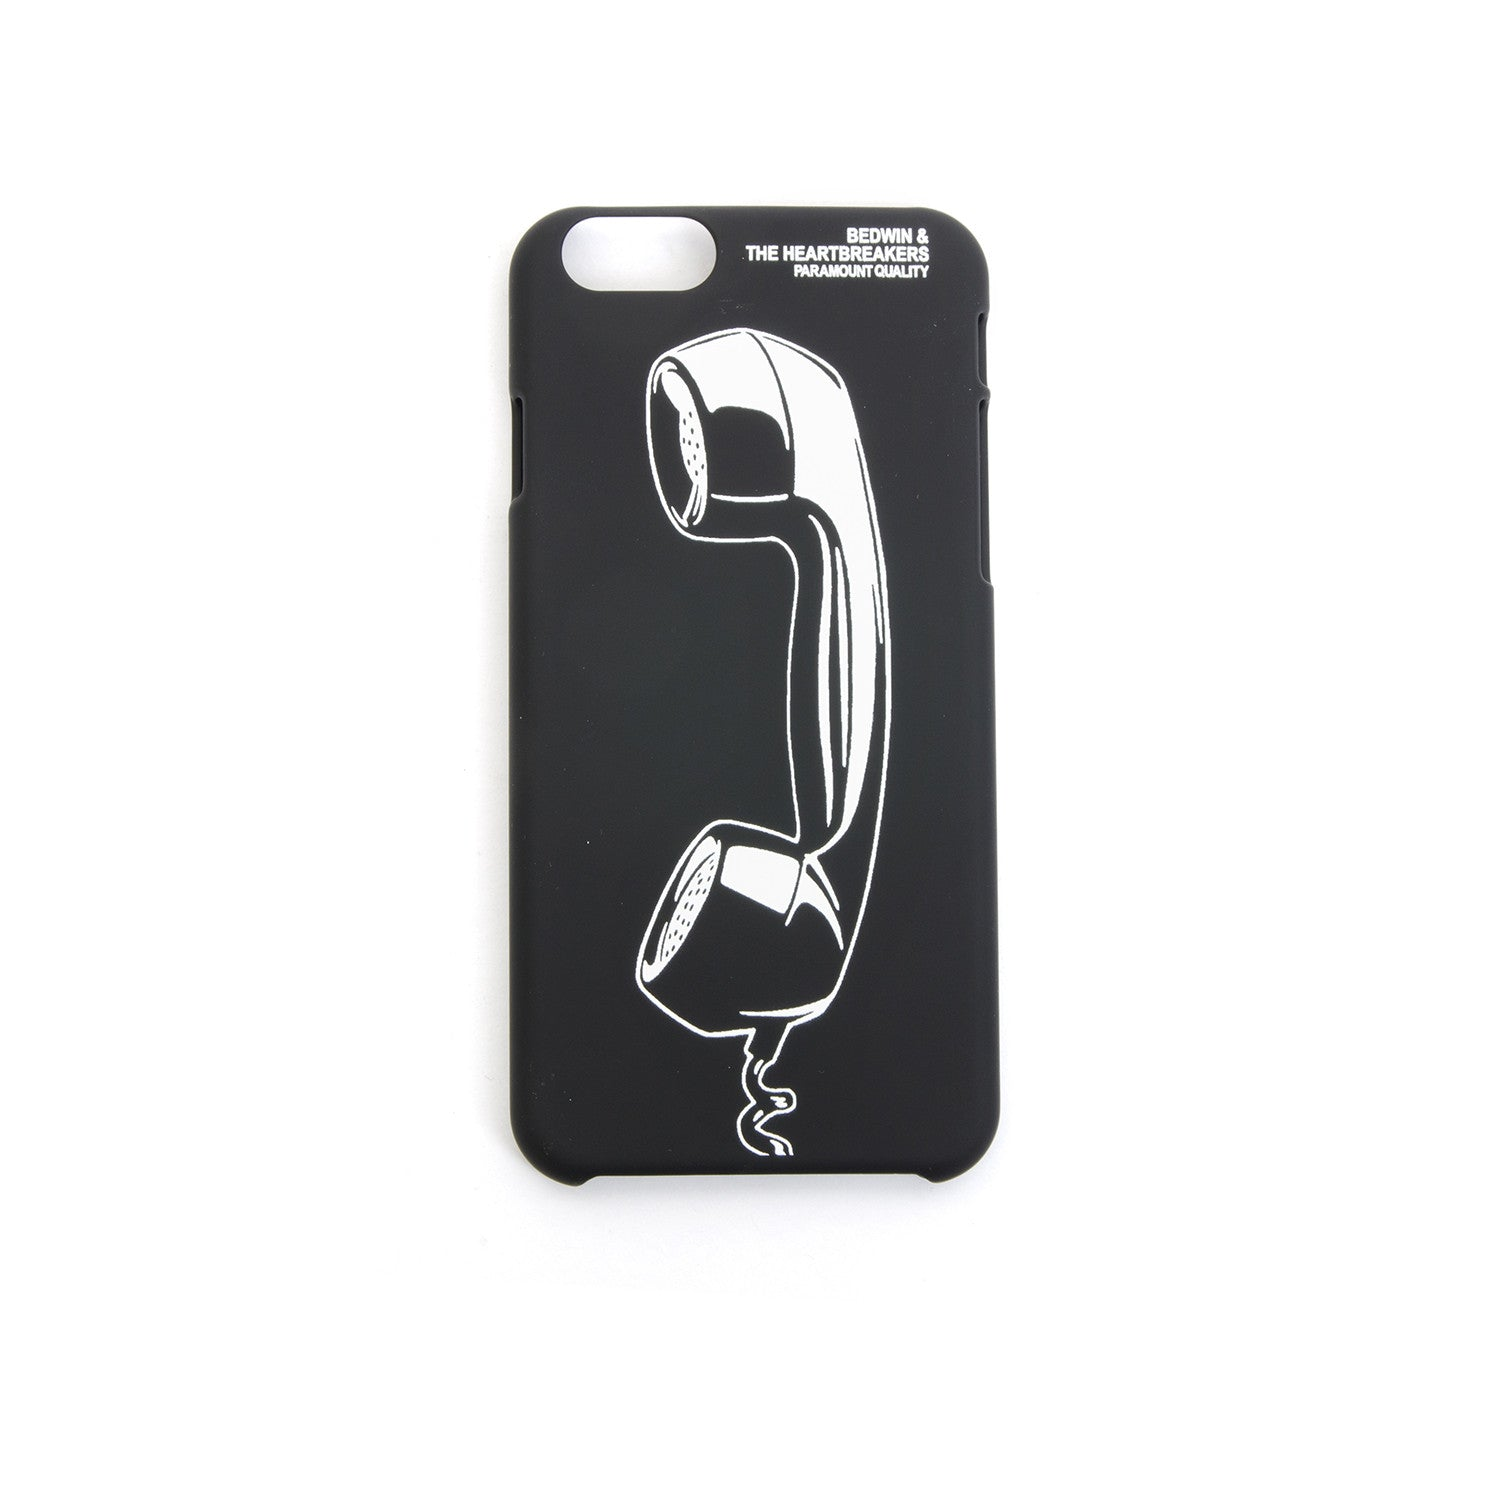 Bedwin 'Ringwald' iPhone 6 Case - Concrete